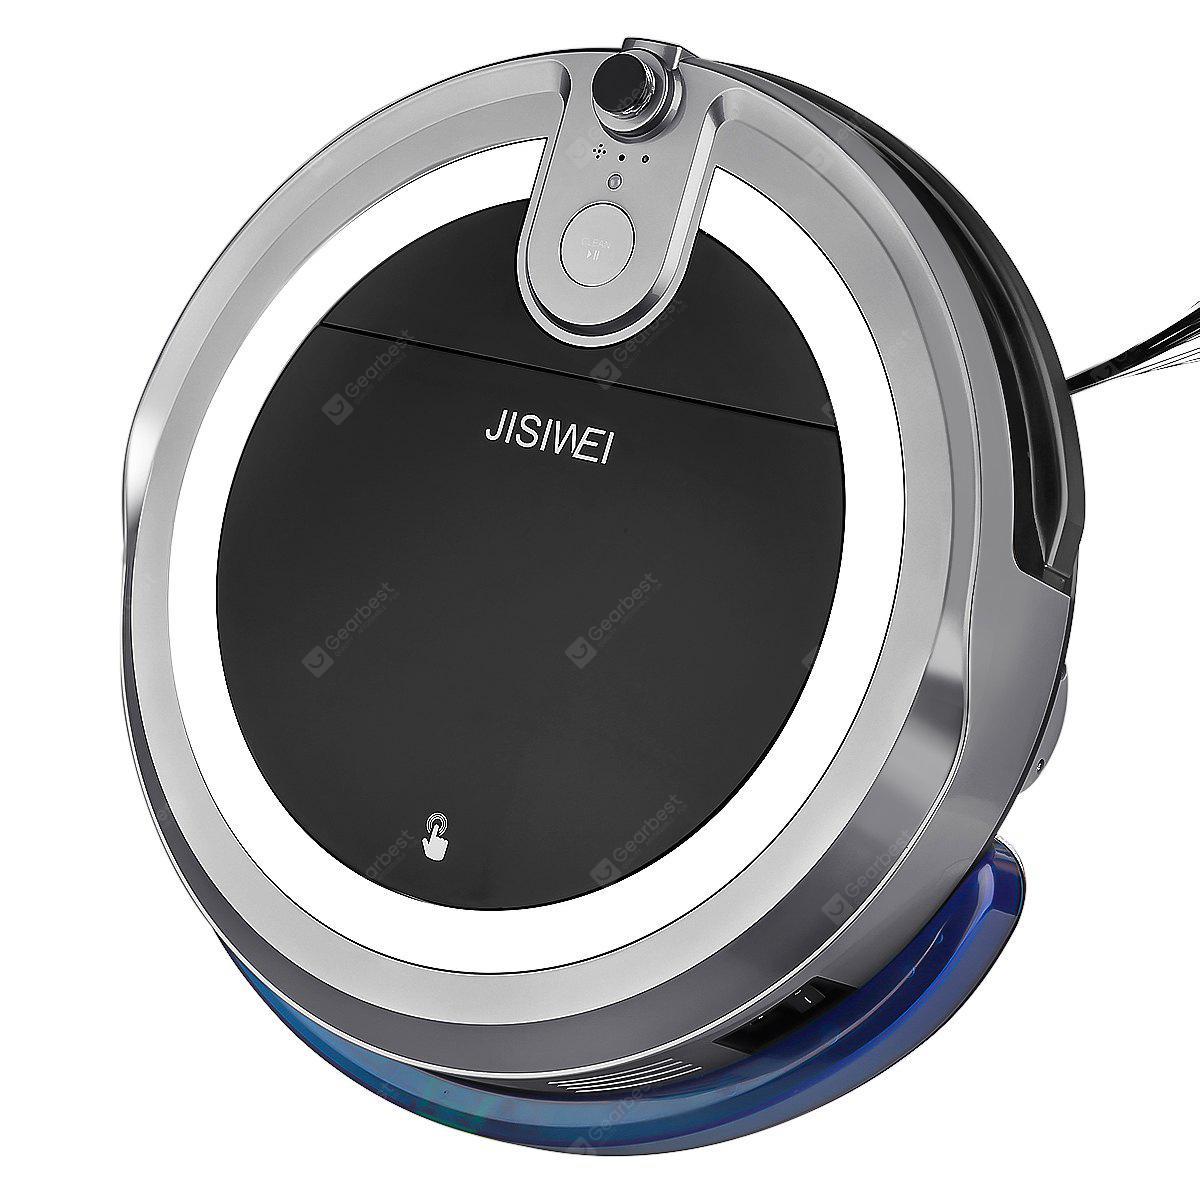 Image result for JISIWEI I3 Smart Robotic Vacuum Cleaner